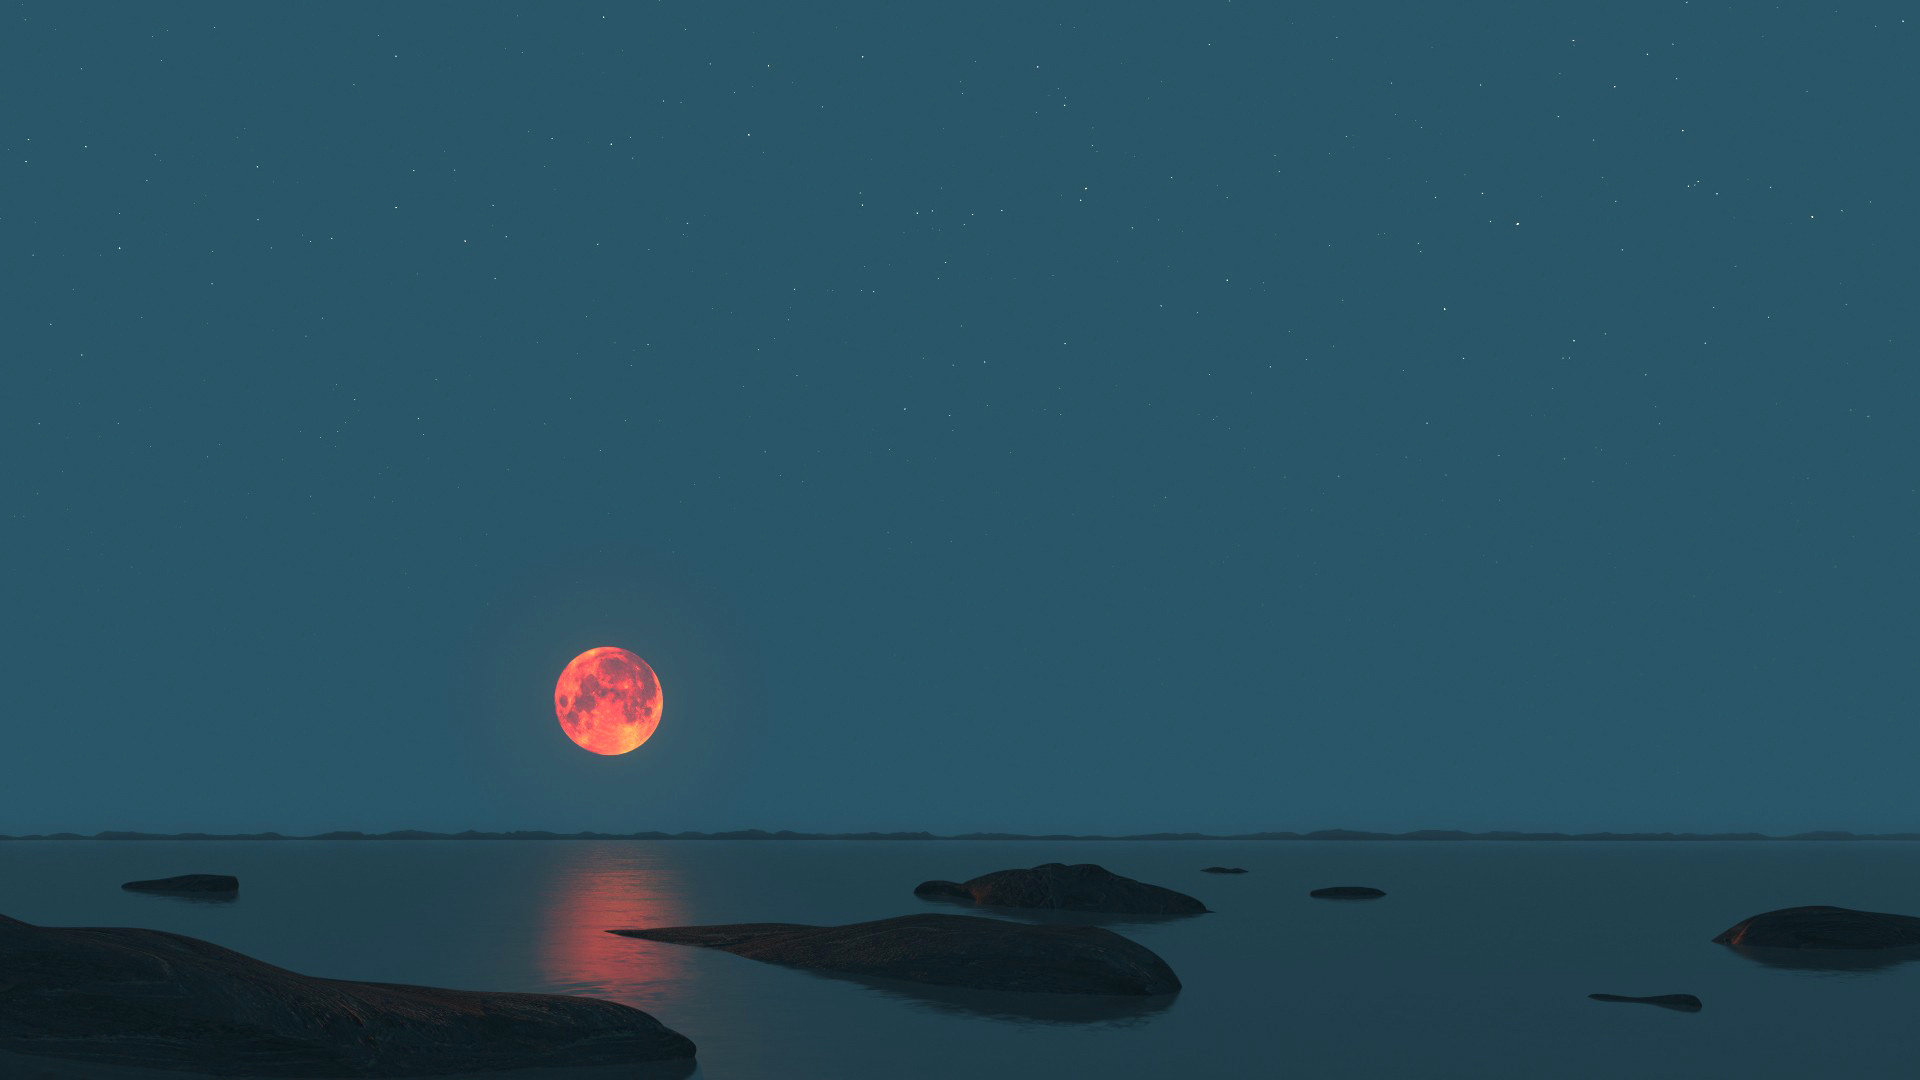 Download Full Hd 1080p Moon Desktop Background Id393902 For Free